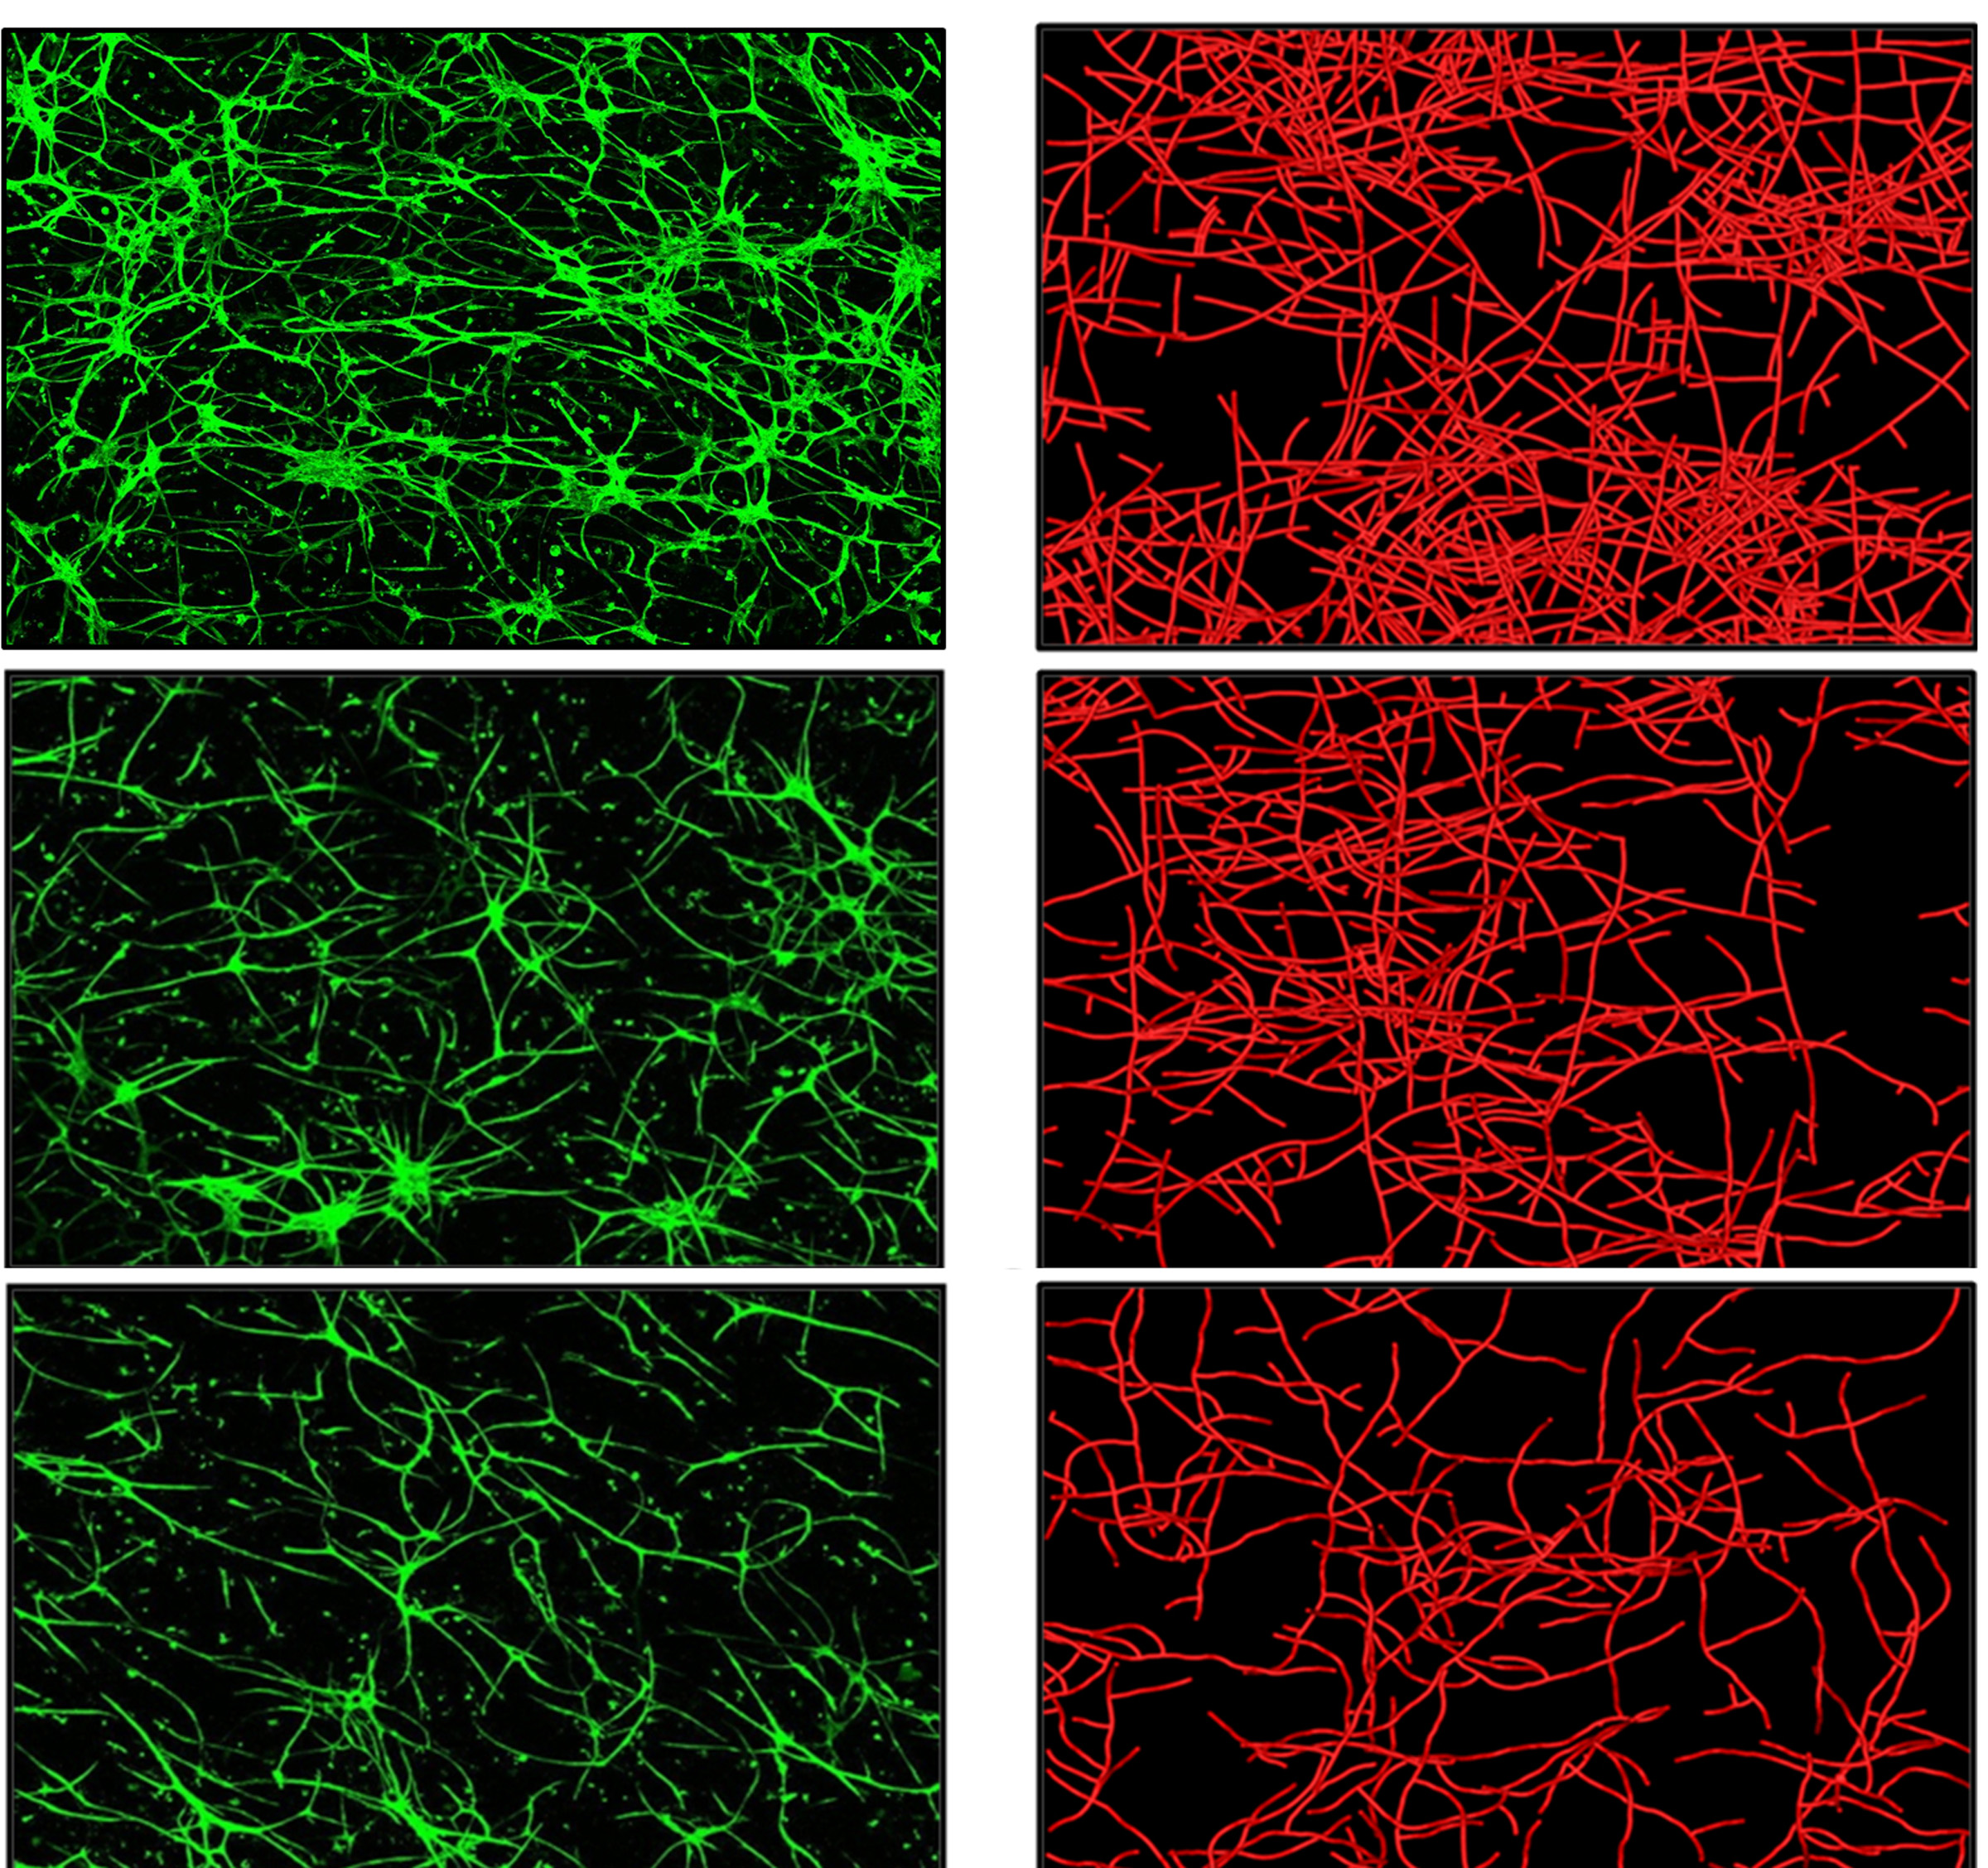 """The microscope images on the left (green) show real blood vessels growing in culture, while the images on the right (red) are from a computer simulation of blood vessel growth. The top images show real and simulated blood vessel growth when vessel fragments are placed in an """"extracellular matrix"""" of collagen with a relatively low density. The middle and bottom images show how blood vessel growth is impeded when they are placed in collagen matrix with medium and higher density, respectively. University of Utah bioengineers say the computer simulation of blood vessel growth is an early step toward new treatments to provide better blood supply to skin grafts and implanted ligament and tendon, as well as tissues damaged by diabetes and heart attack."""